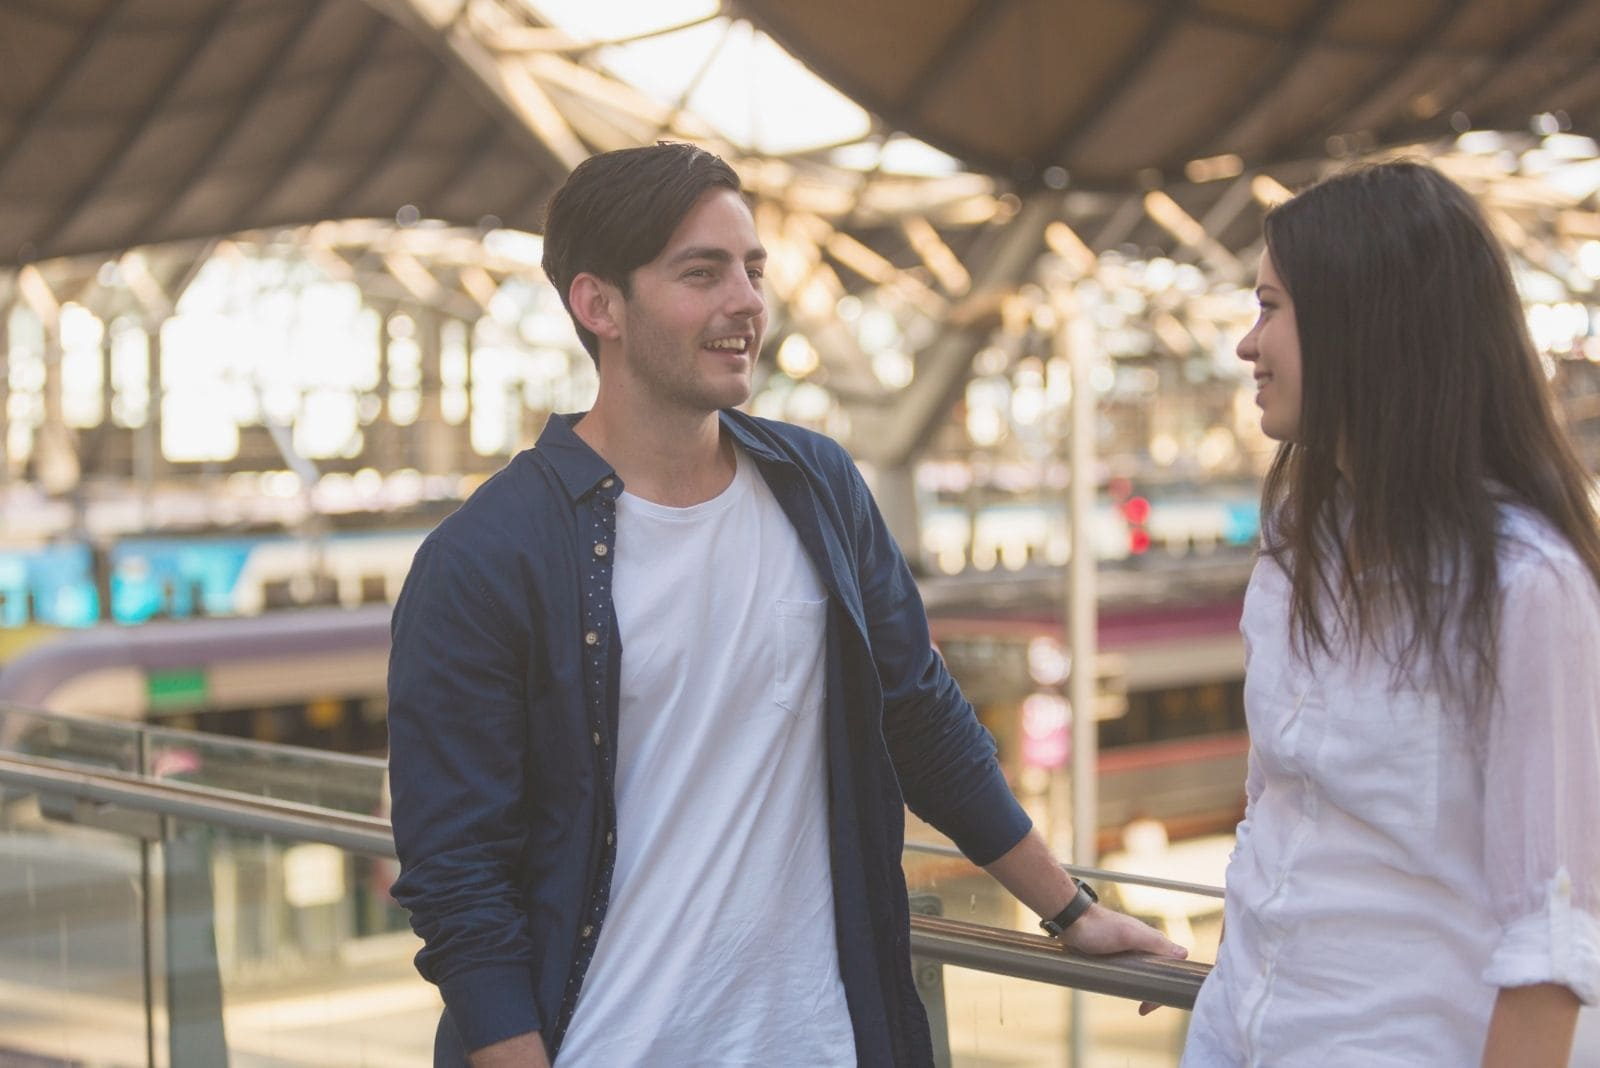 young couple standing at the train station standing wearing white top